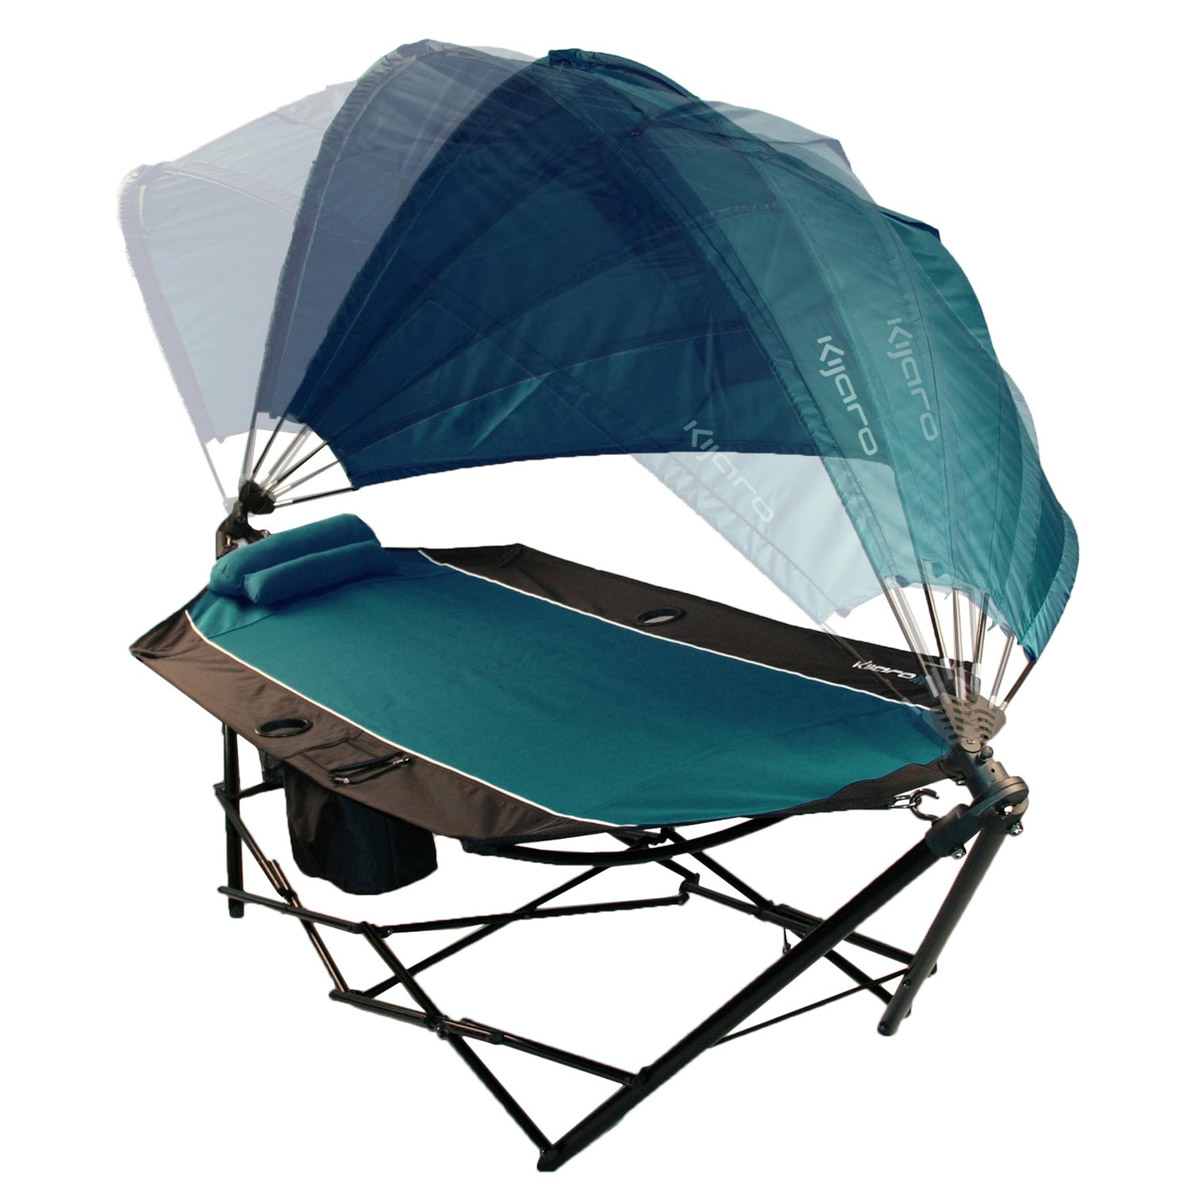 Very Kijaro - Portable Hammock With Canopy and Cooler - The Green Head RT95